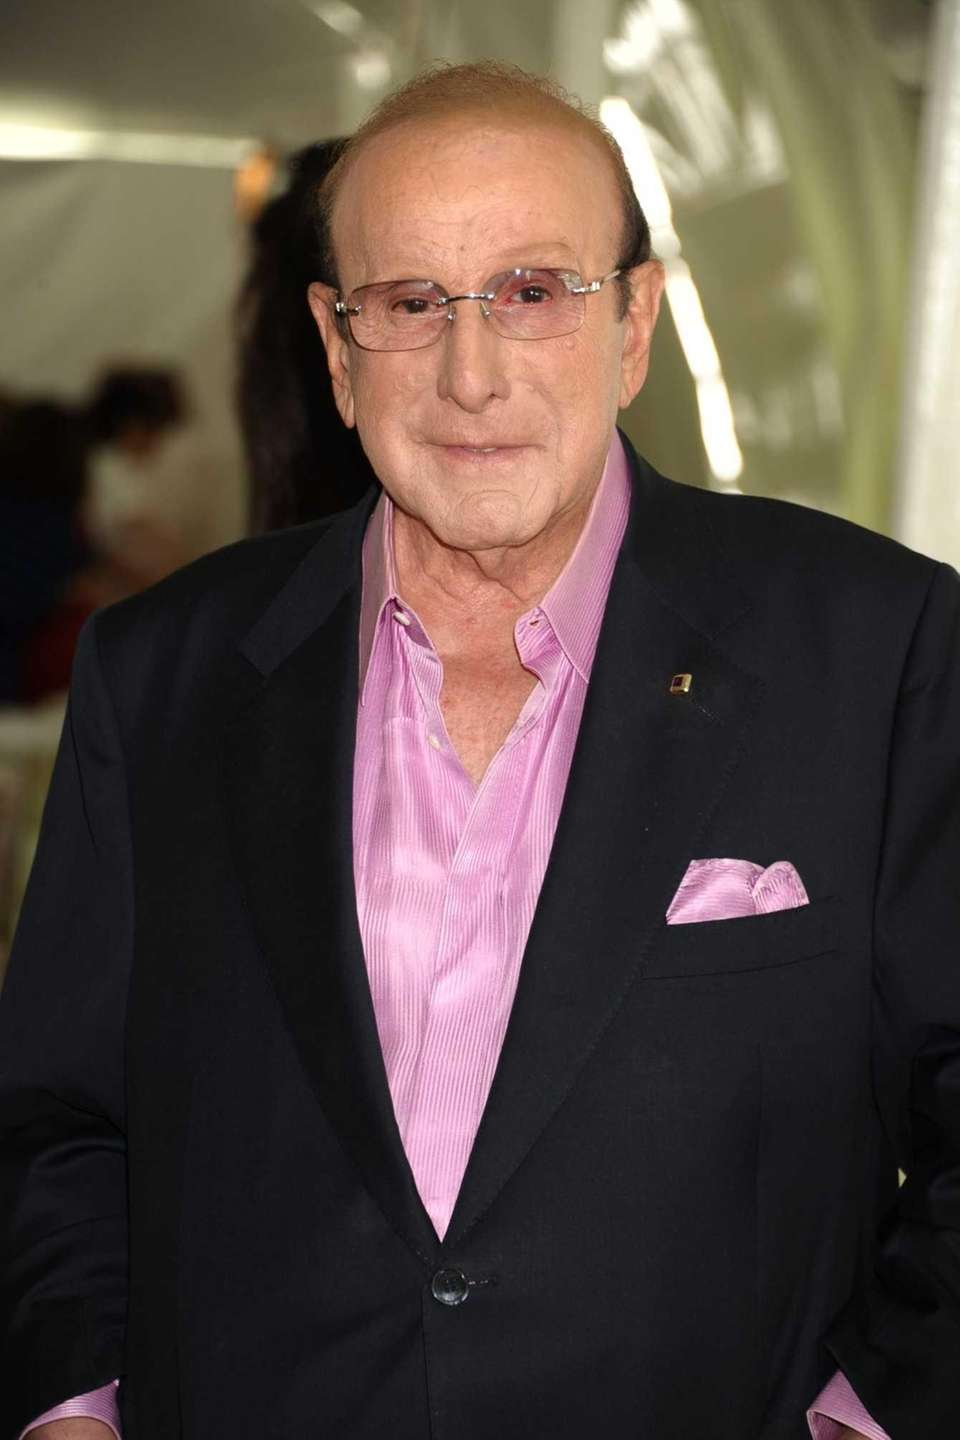 Clive Davis, founder of Arista Records, at the